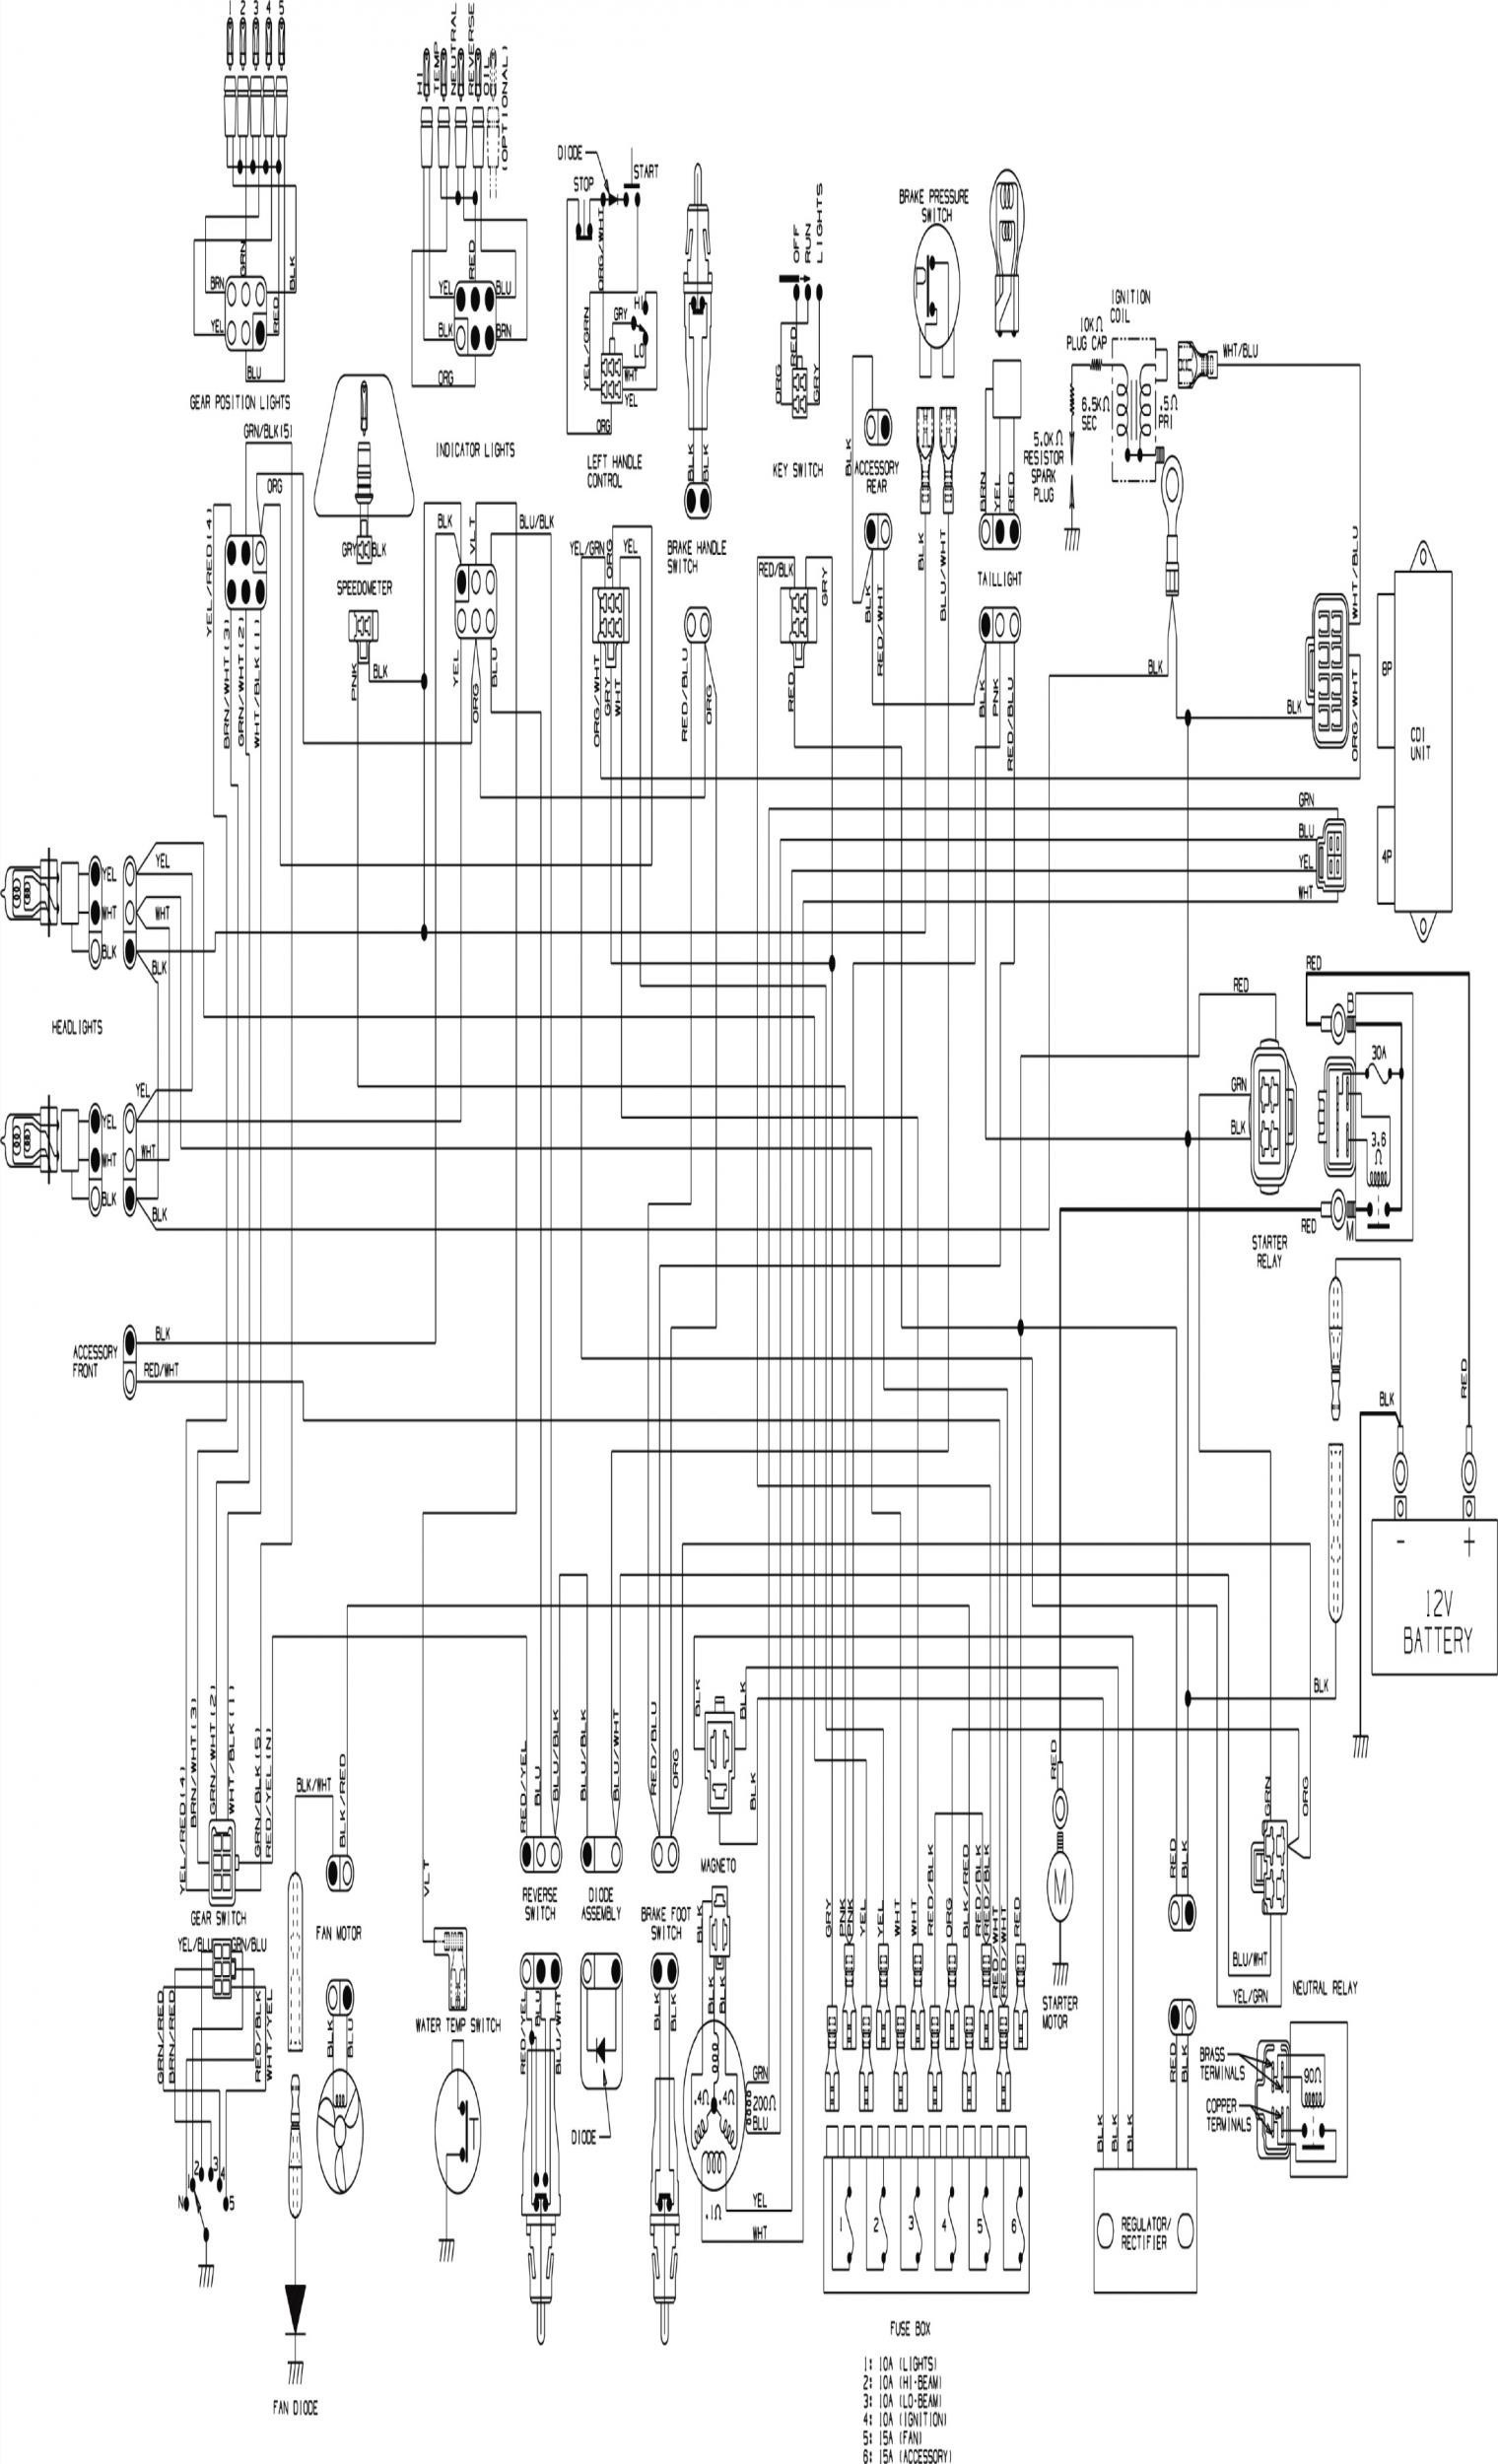 caterpillar starter wiring diagram Collection-Caterpillar Starter Motor Wiring Diagram Refrence 1996 Arctic Cat 454 Wiring Diagram Wire Center • 10-g